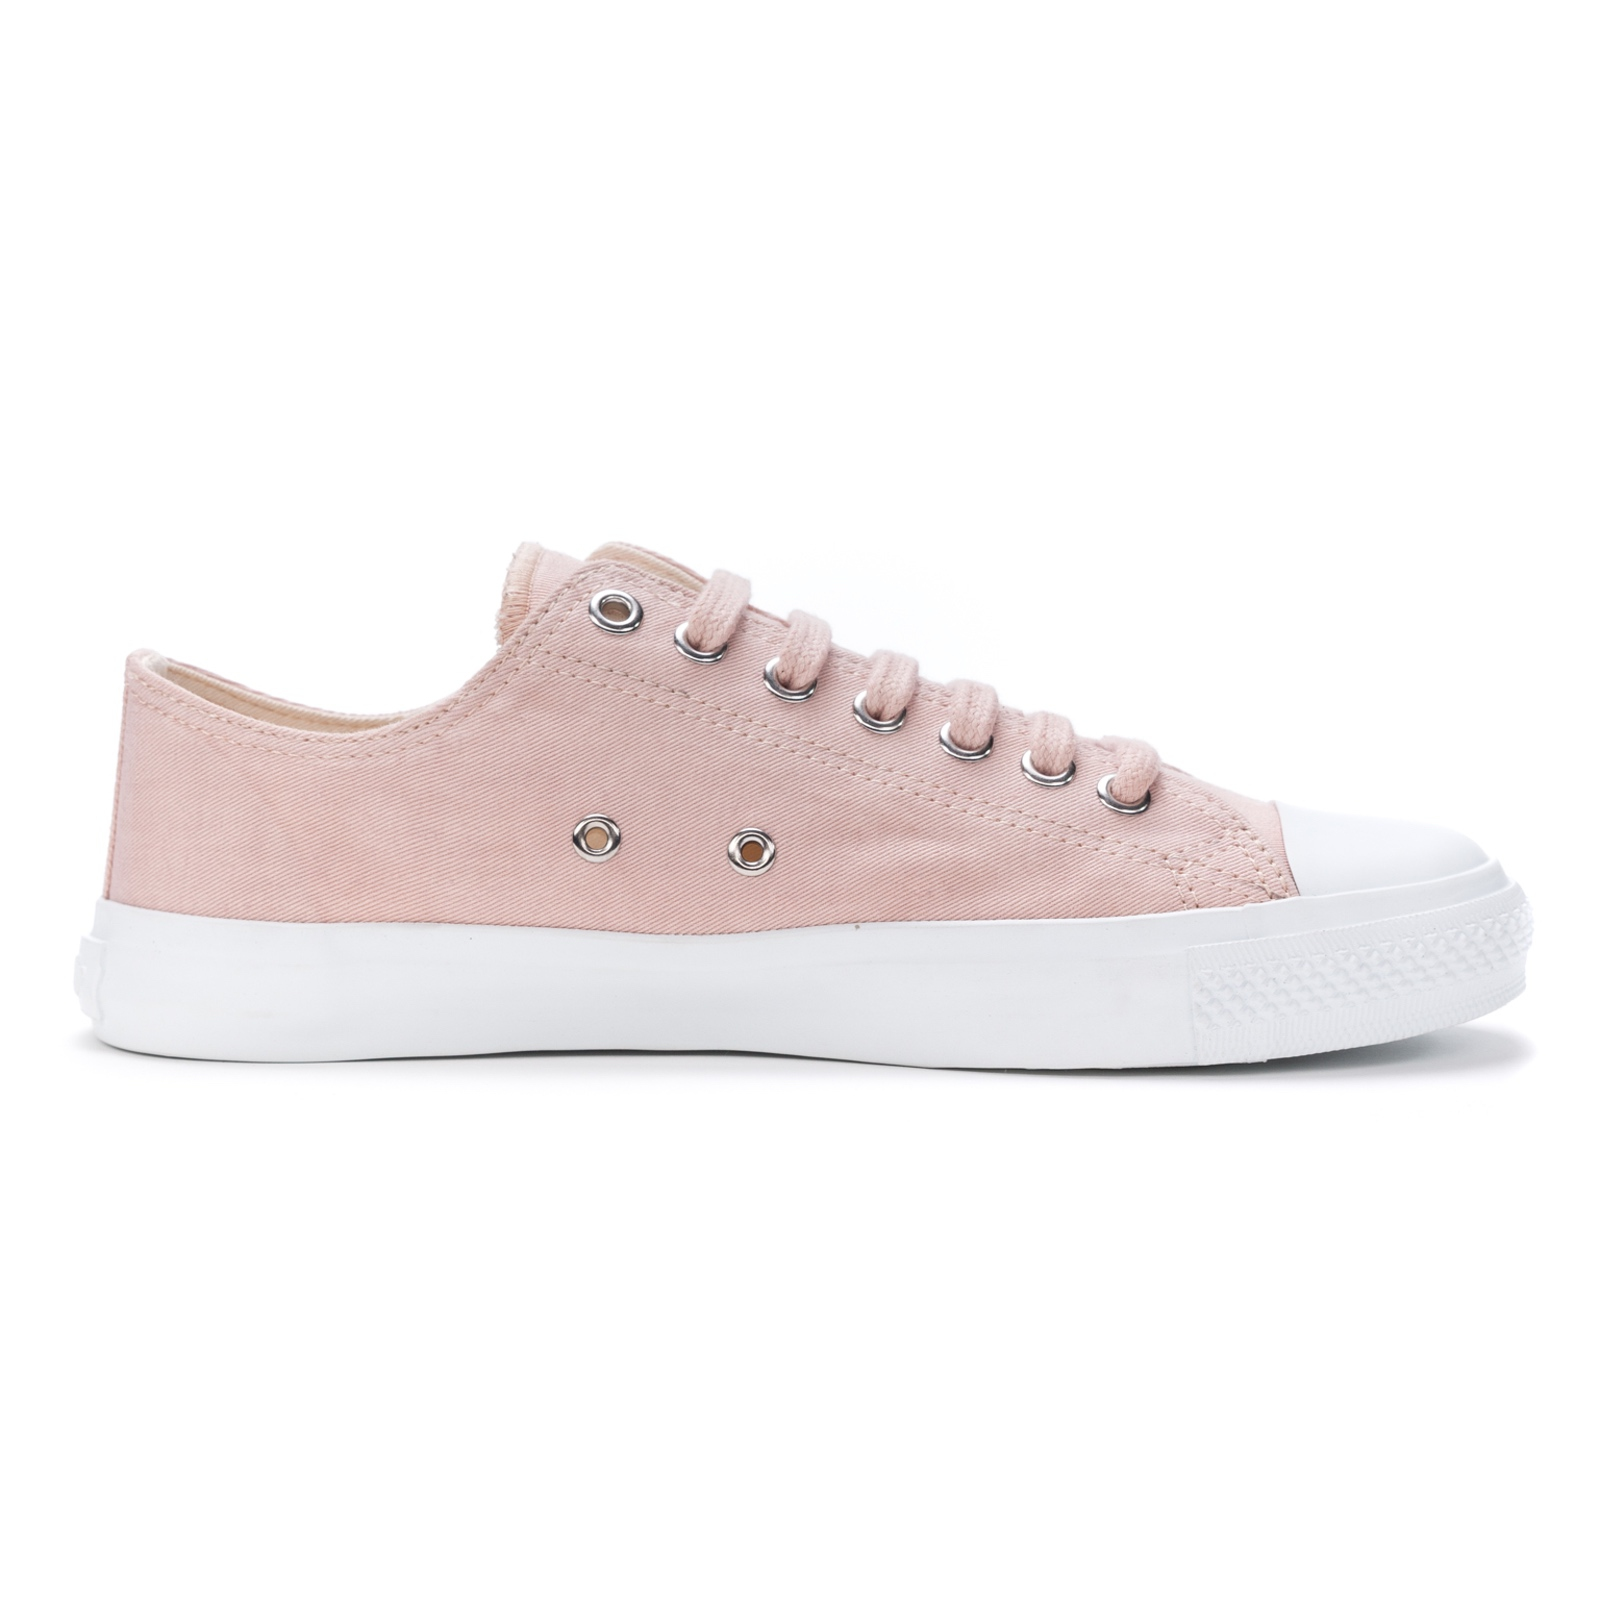 Ethletic Sneaker vegan LoCut Collection 19 Farbe sea shell